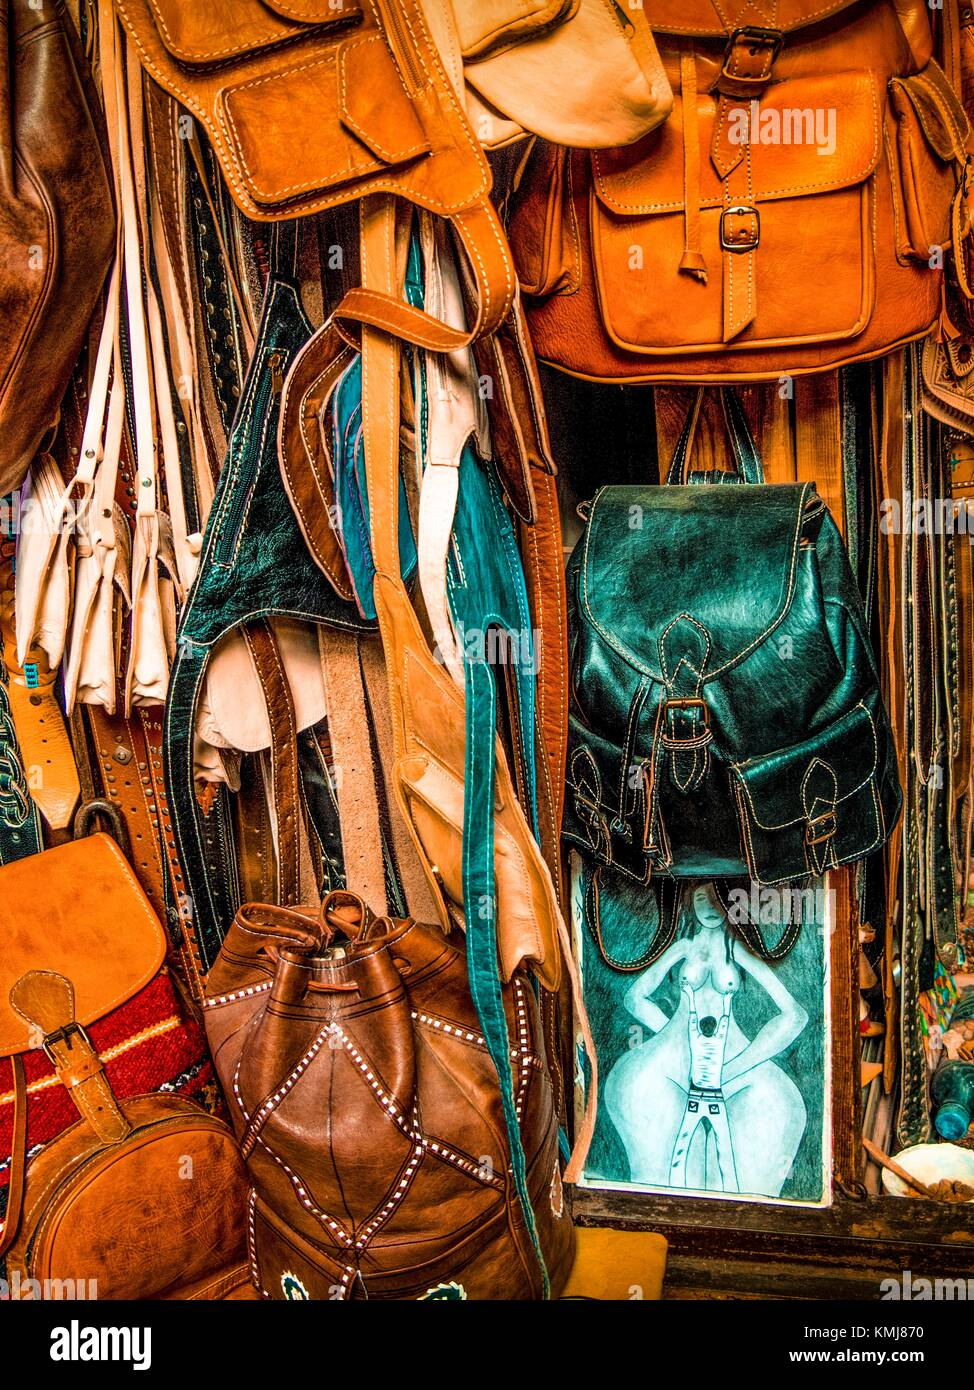 Morocco, Fes, Handycraft: leather bags and others handmade items, in a shop of the ''Medina'' (old - Stock Image